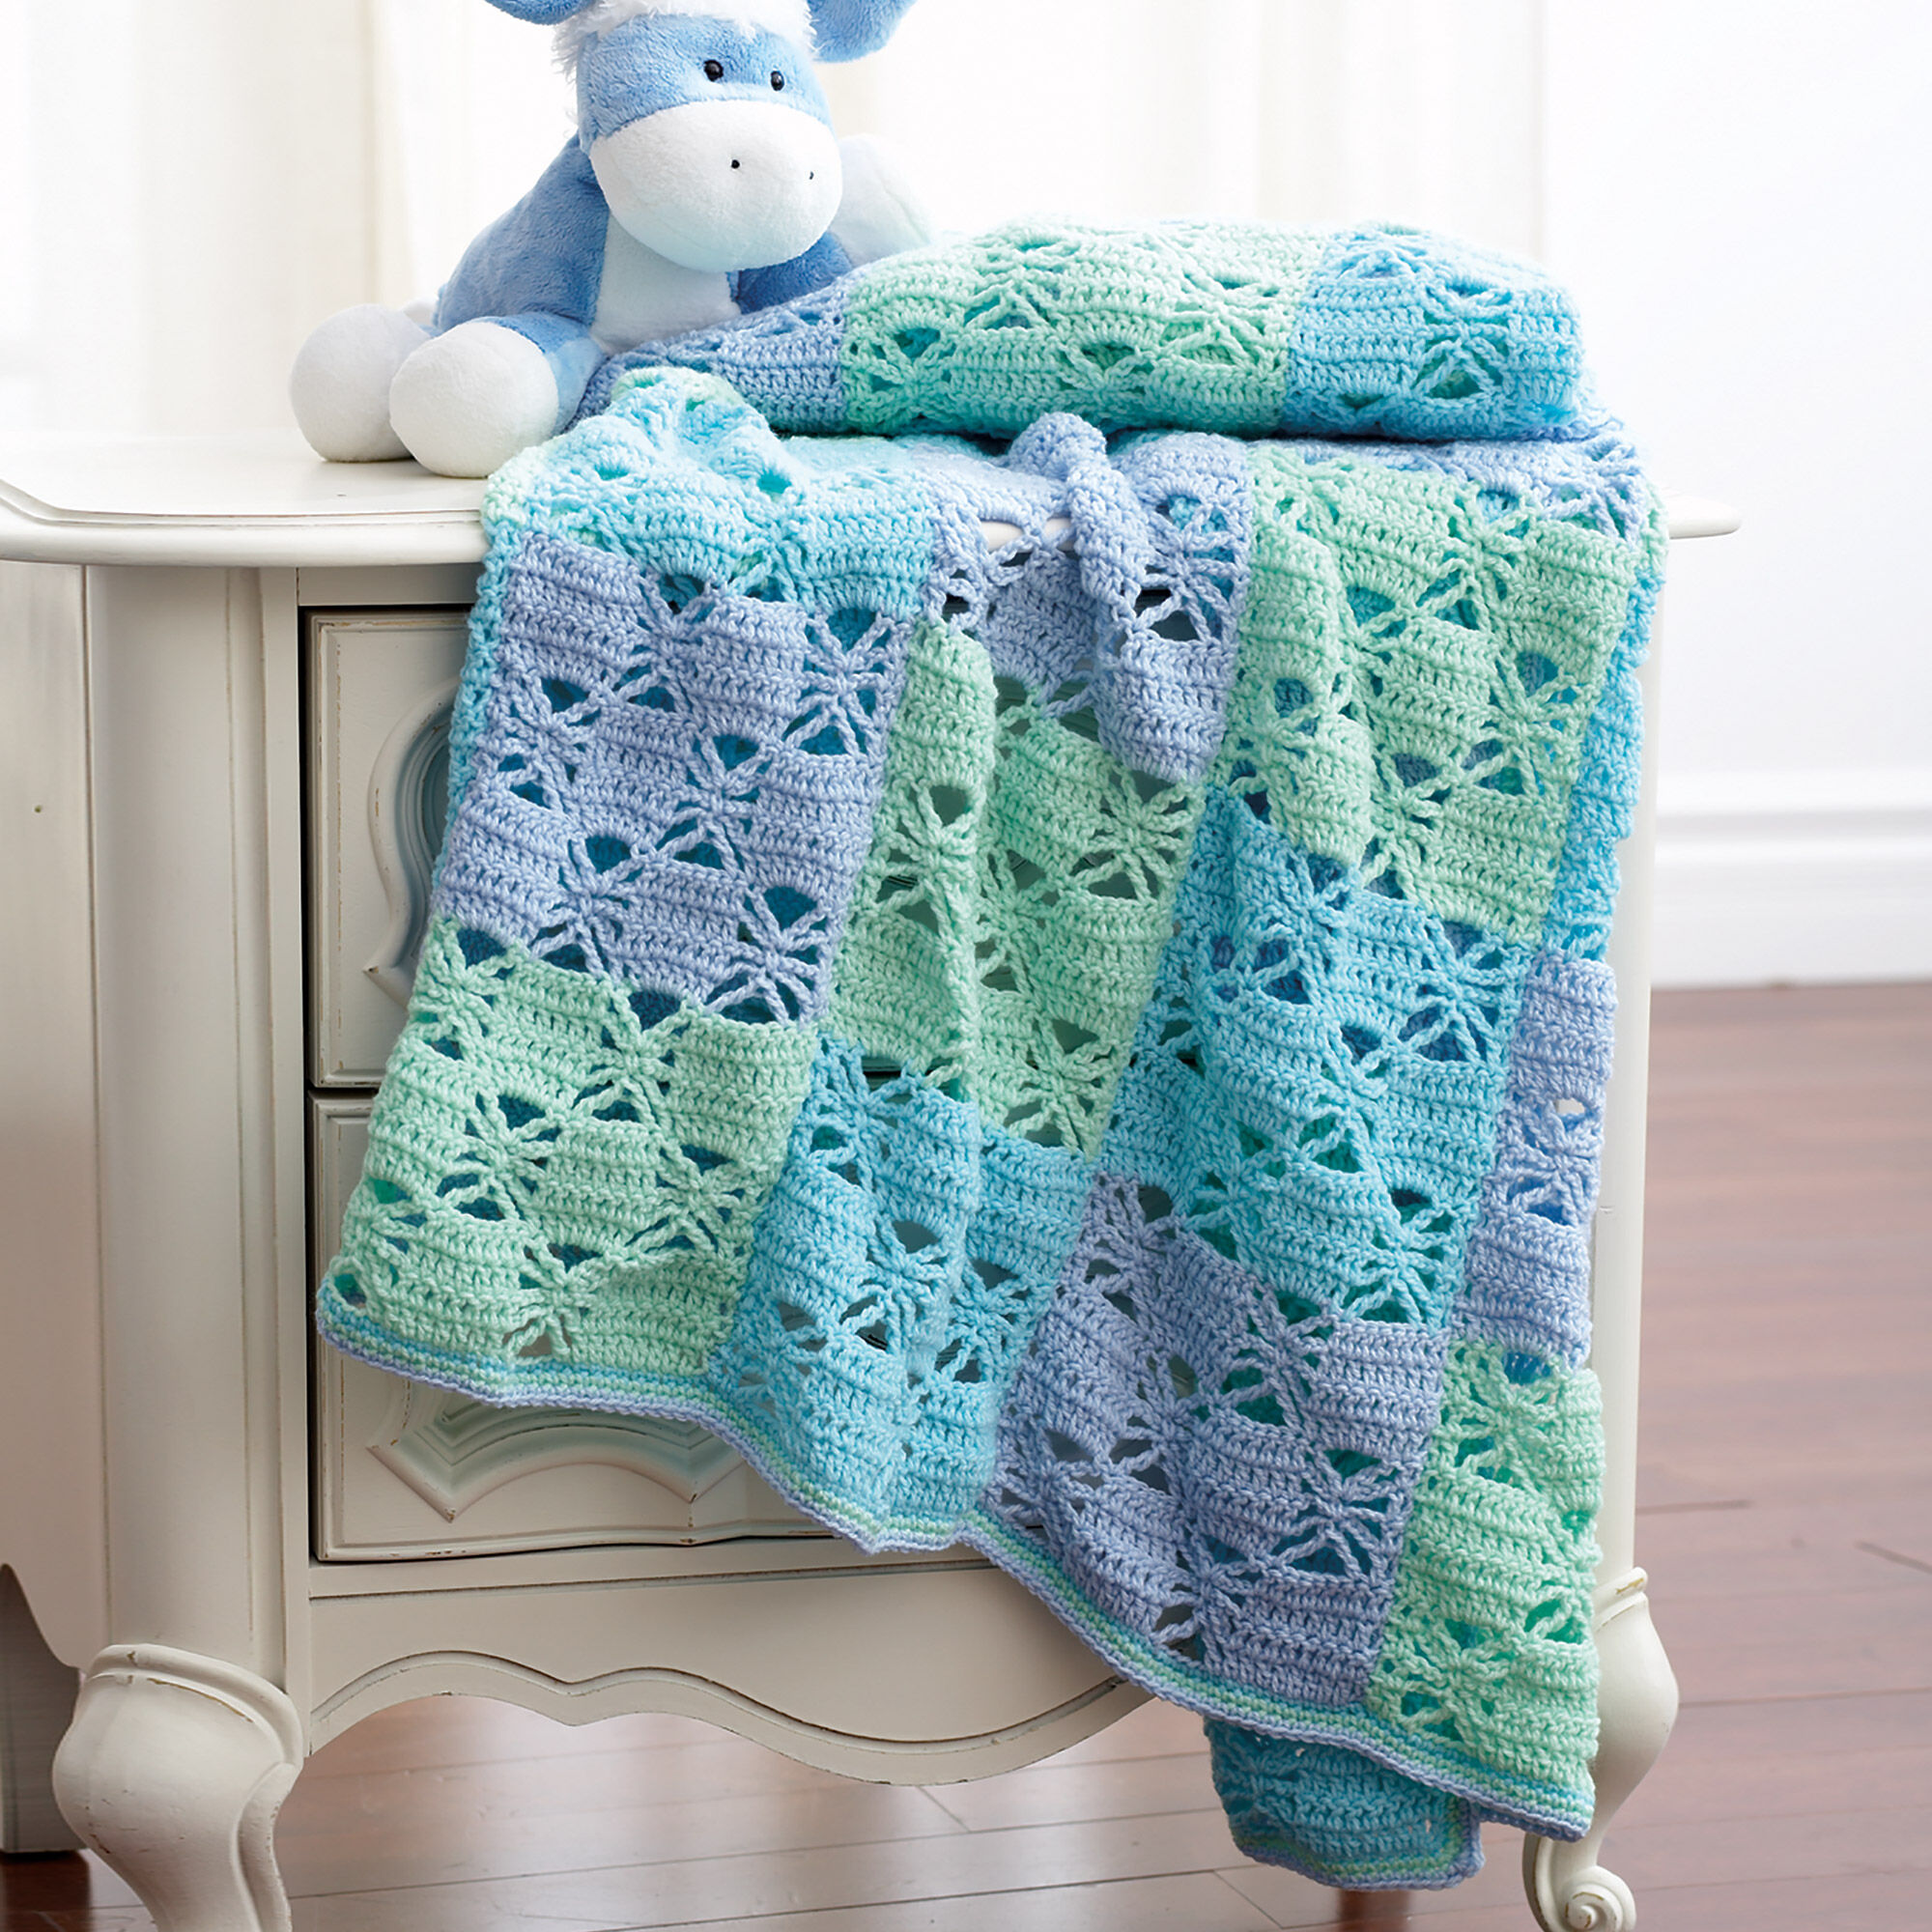 Bernat 3 Color Crochet Blanket | Yarnspirations